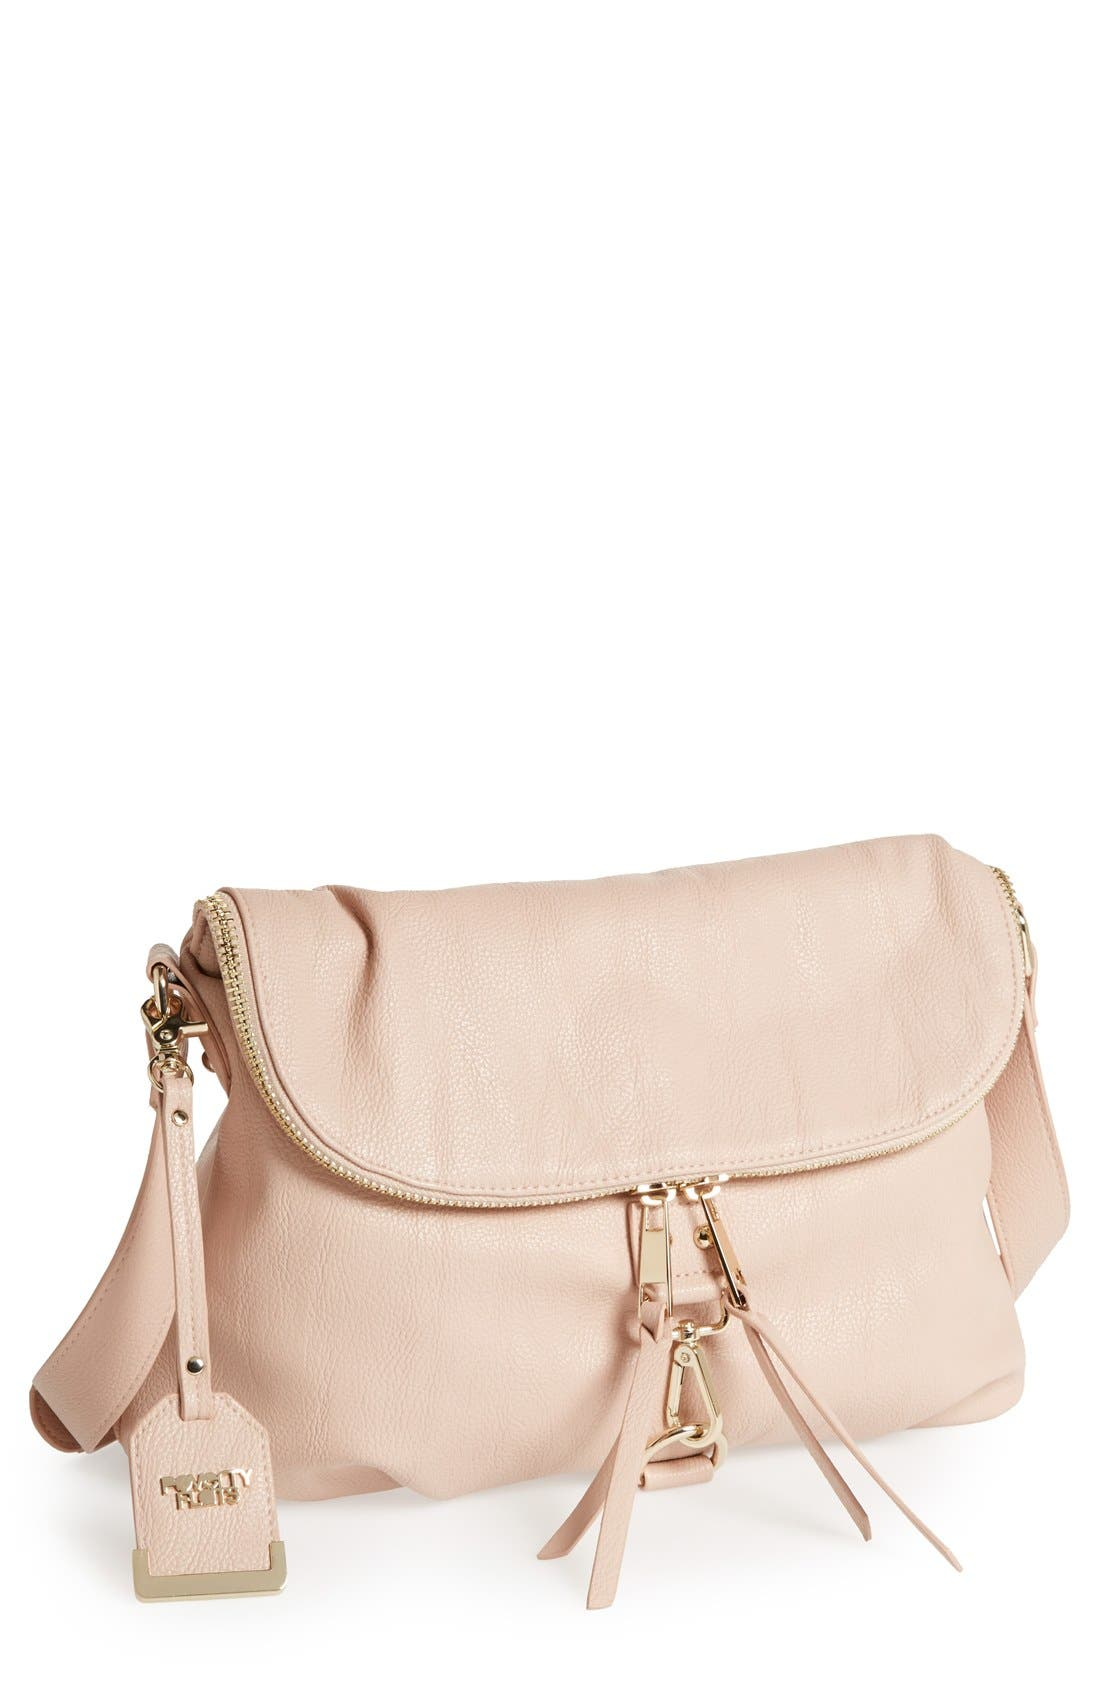 Main Image - POVERTY FLATS by rian 'Tunnel' Shoulder Bag